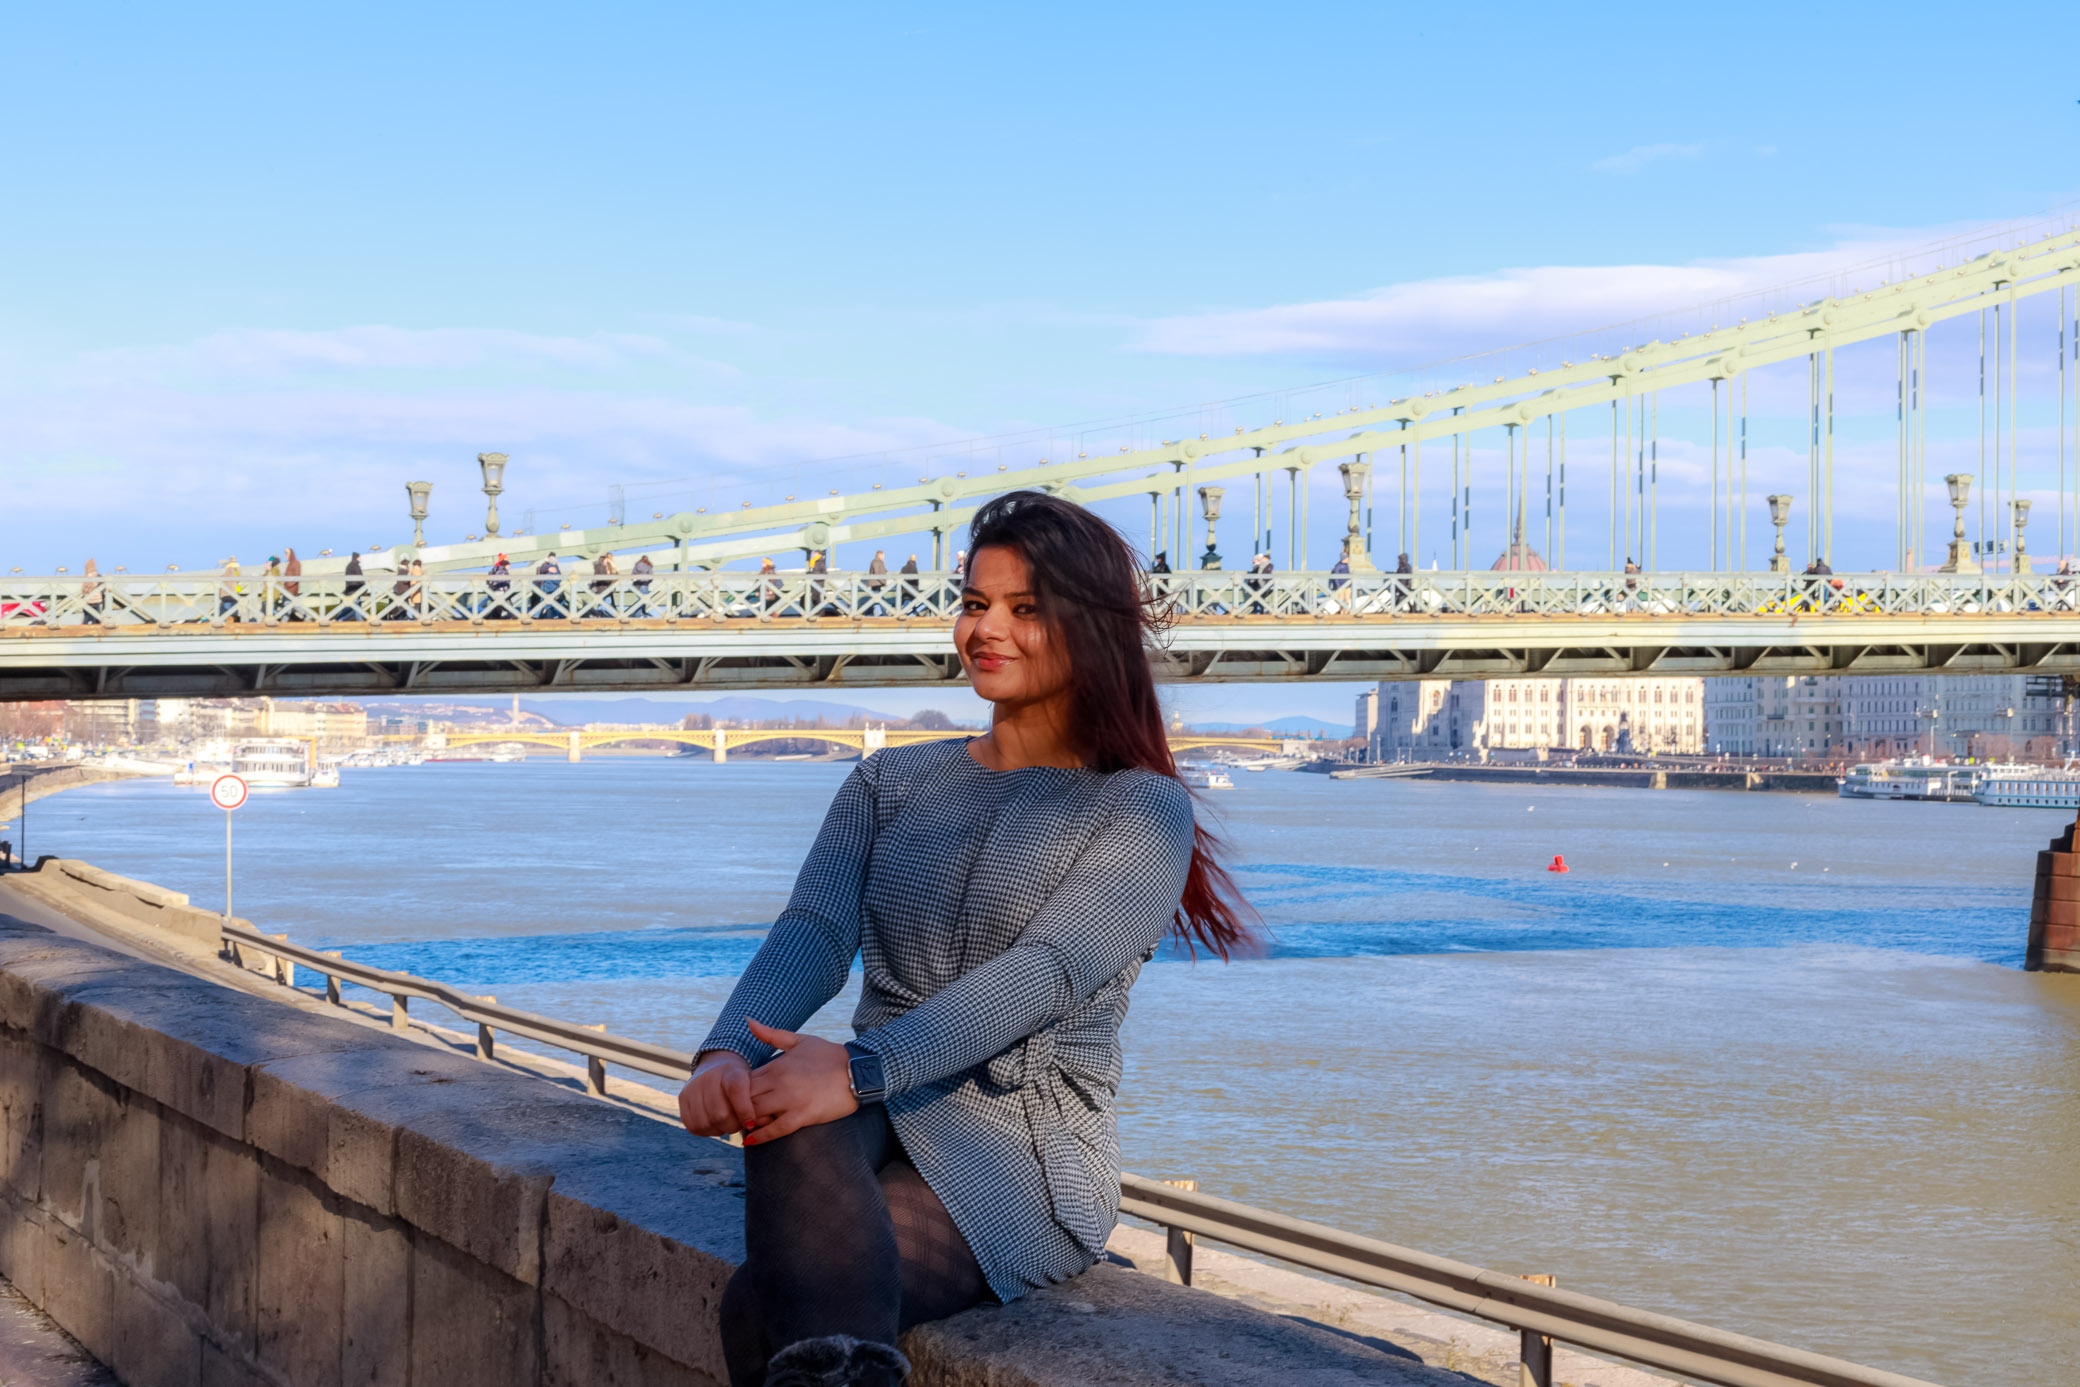 Danube river portrait